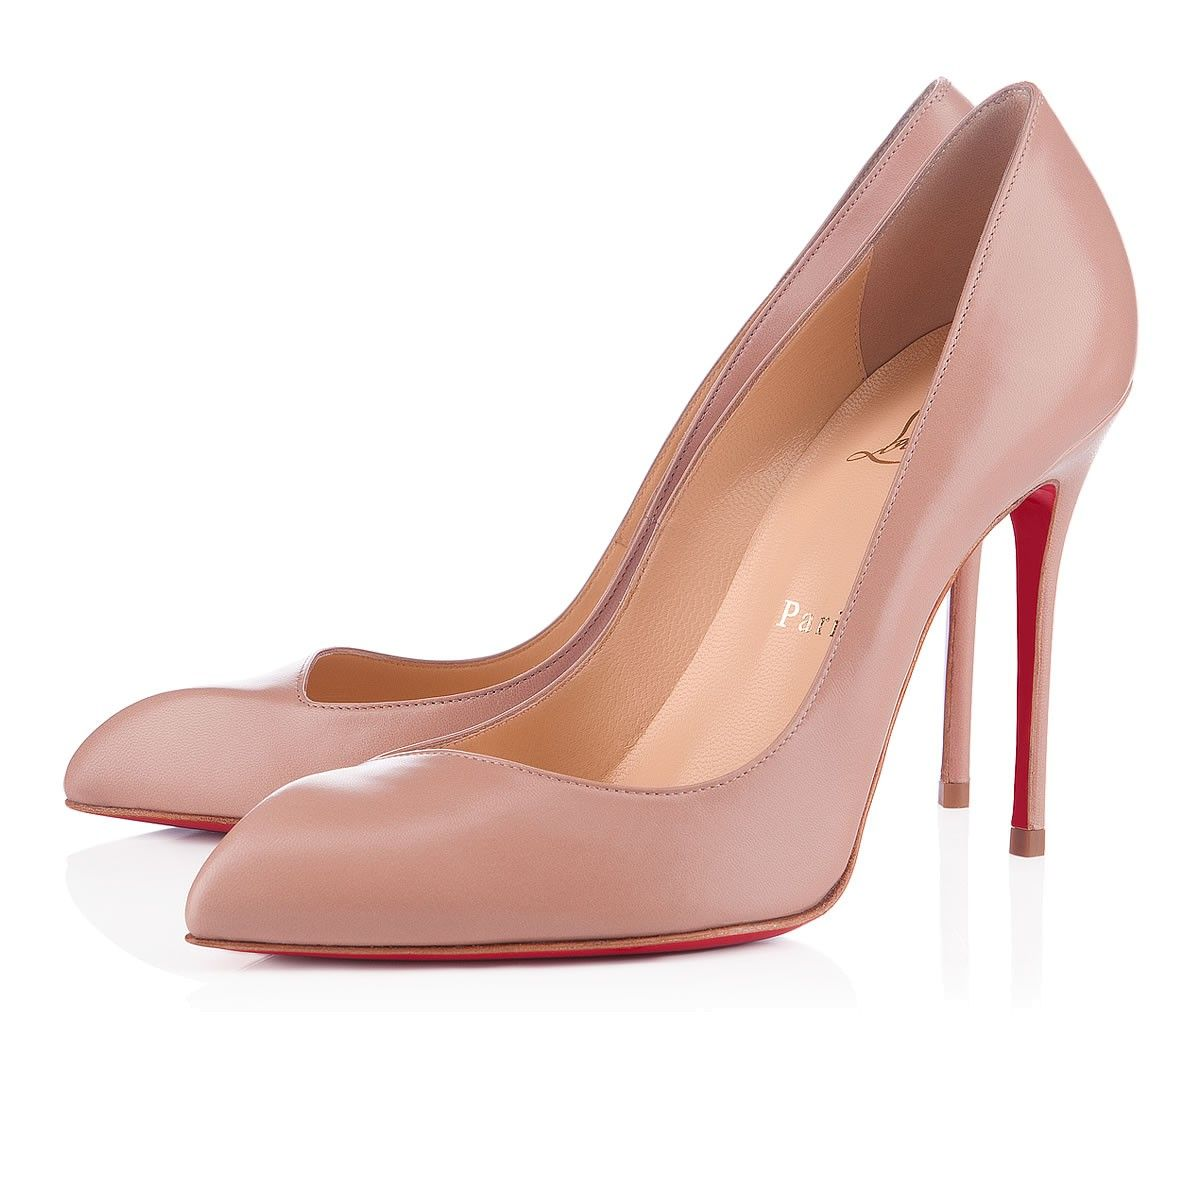 Why the shiny nude pump must die